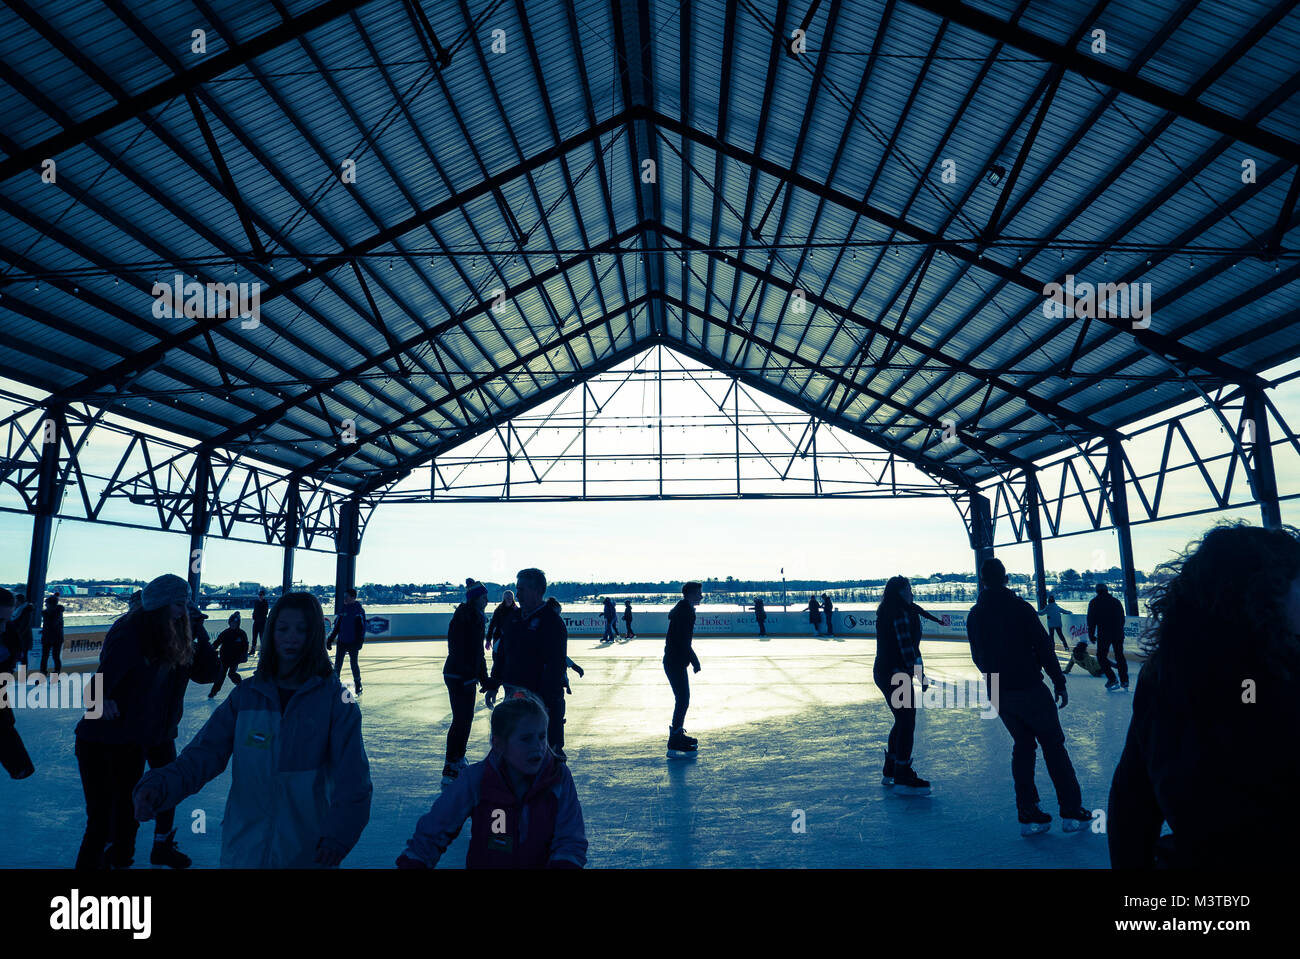 Ice Arena at Thompson's Point in Portland, Maine - Stock Image